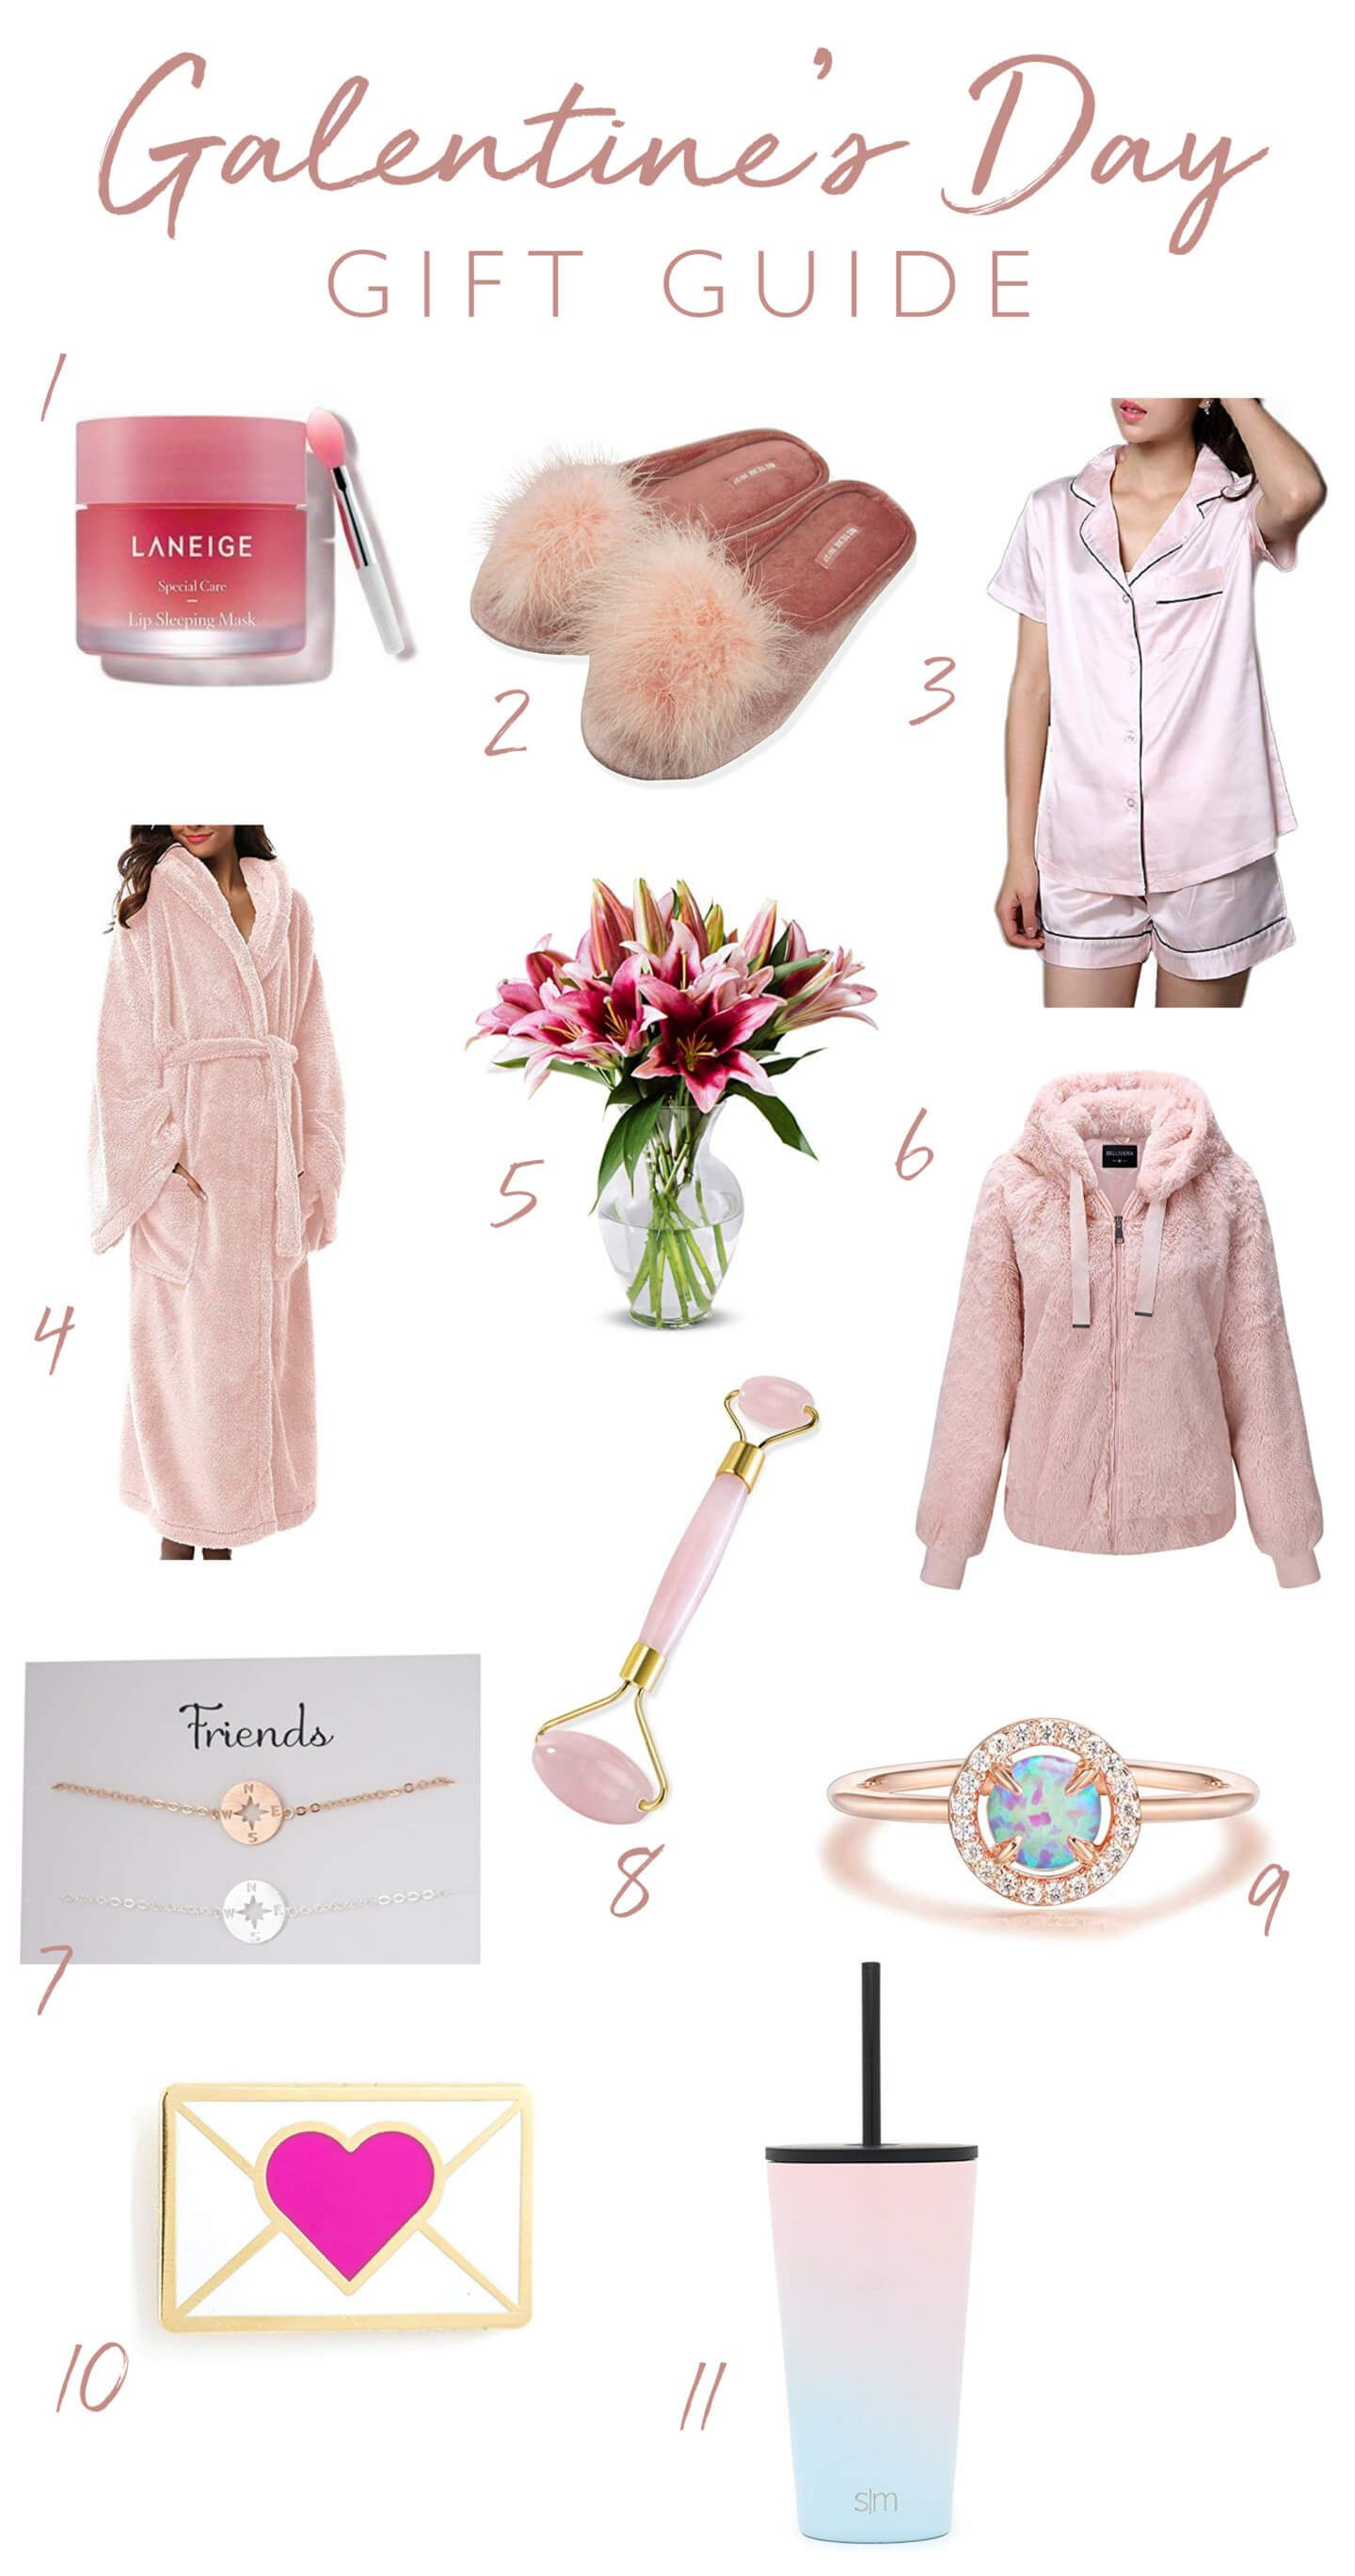 Galentines day gift guide what the fab fashion gifts